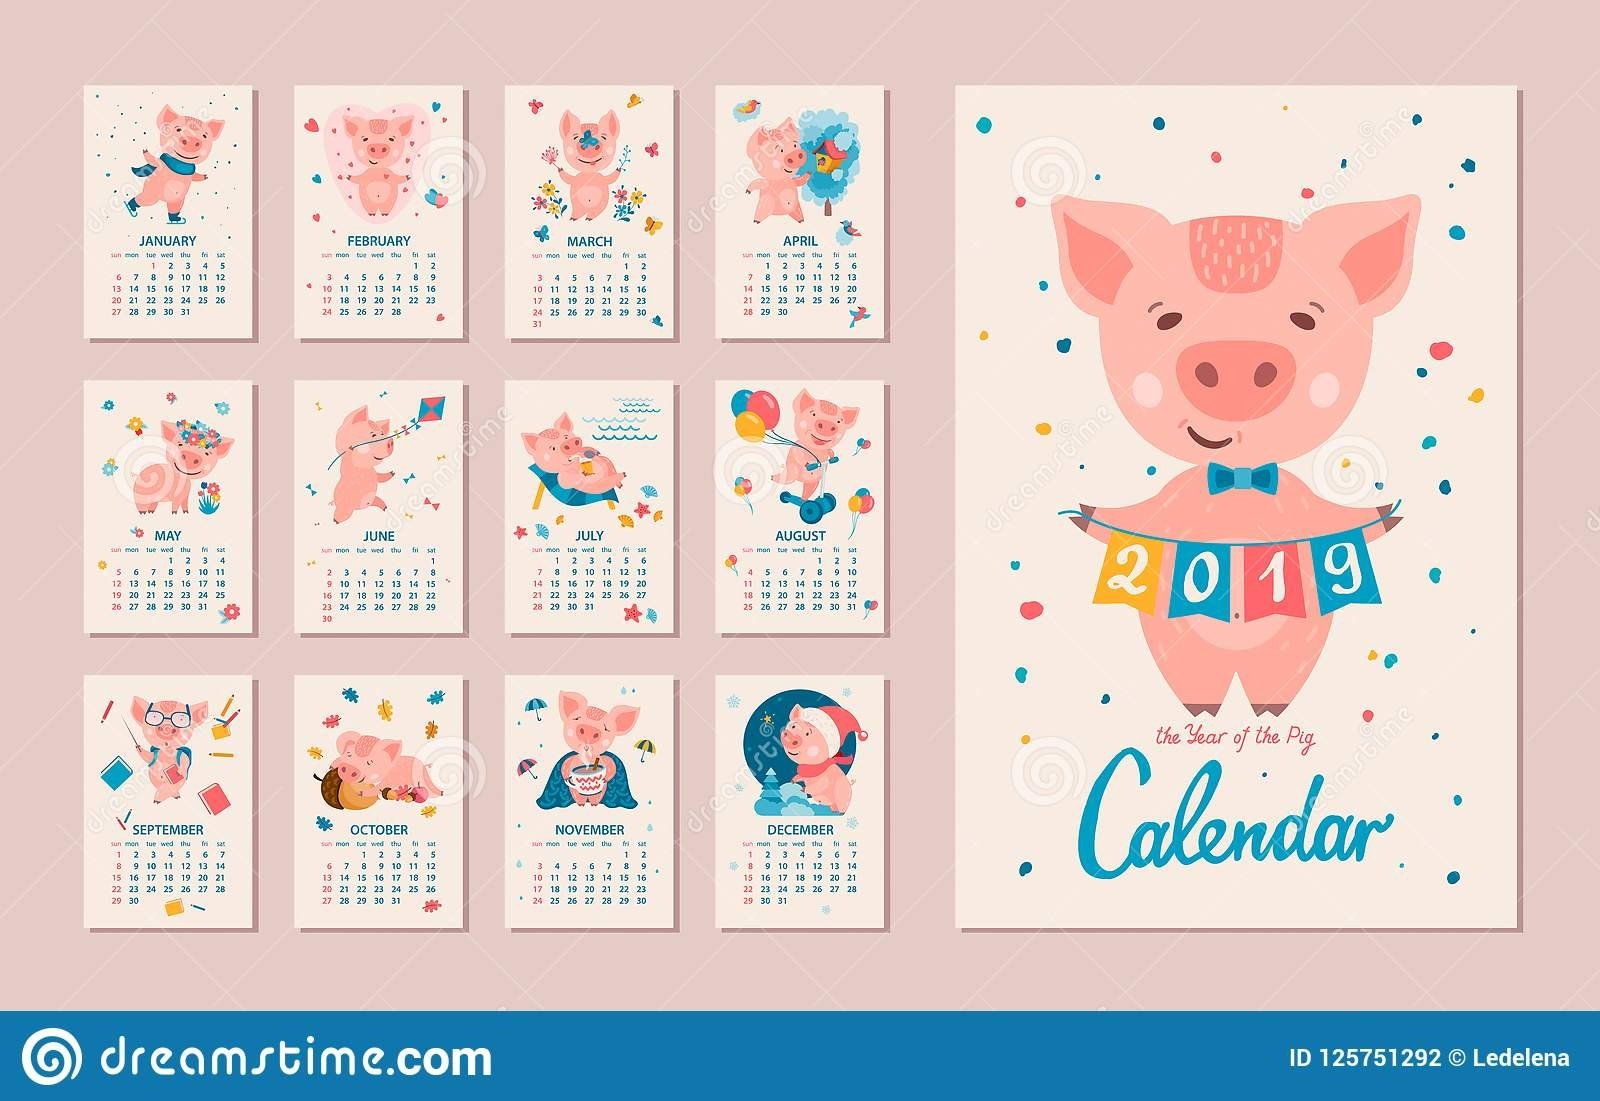 2019 Year Of The Pig Calendar Stock Vector - Illustration Of 2019 Calendar 2019 Year Of The Pig